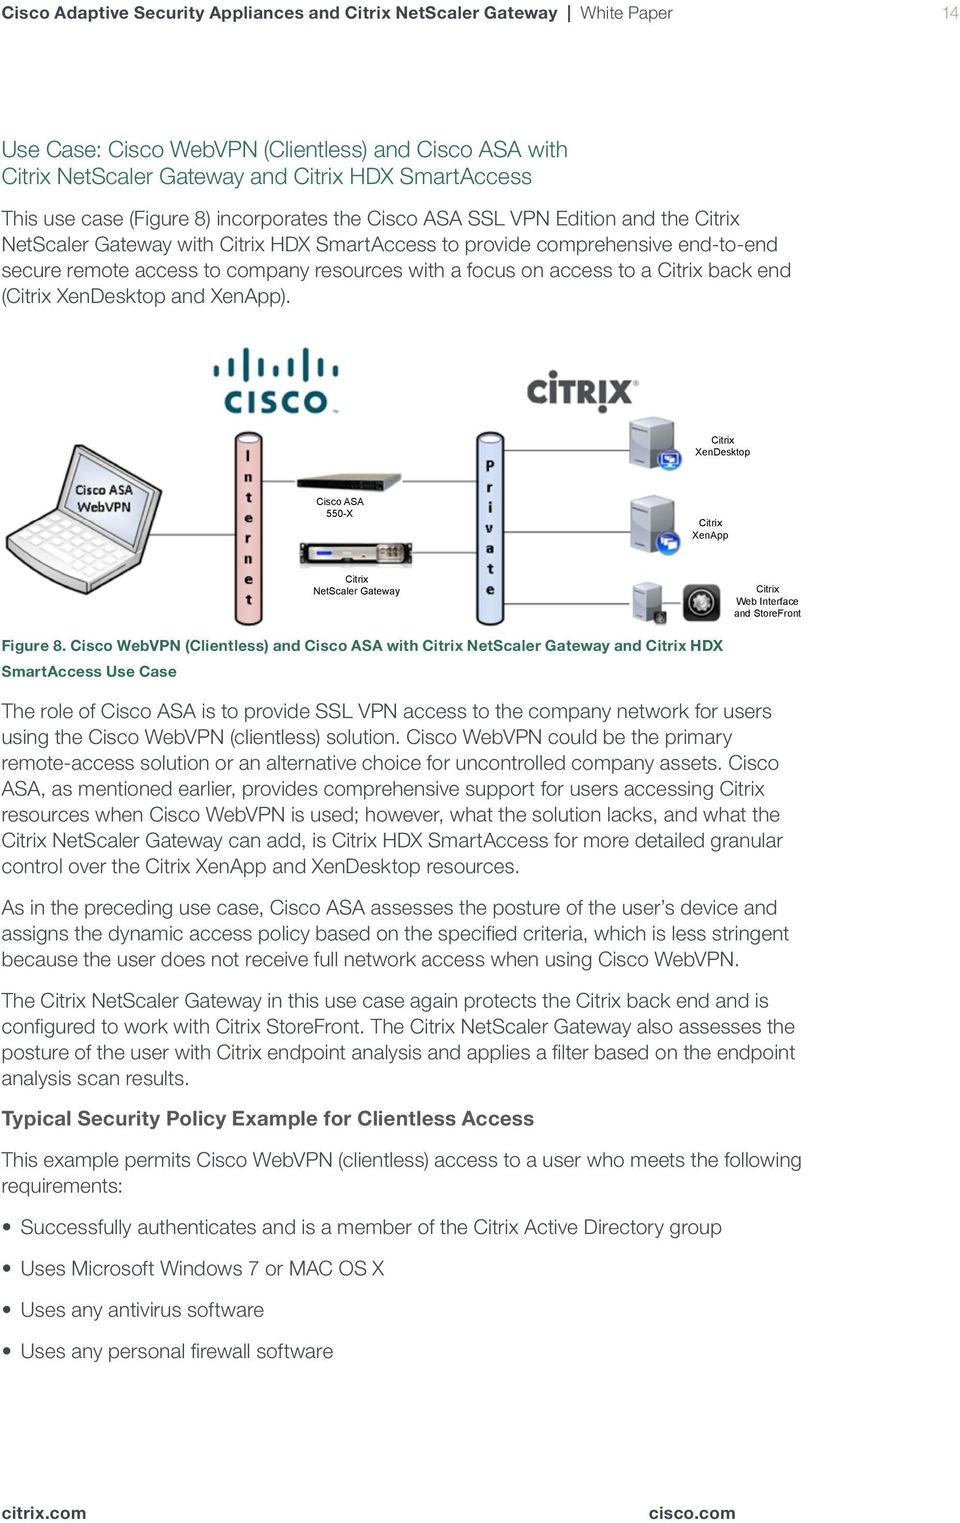 Cisco Adaptive Security Appliances and Citrix NetScaler